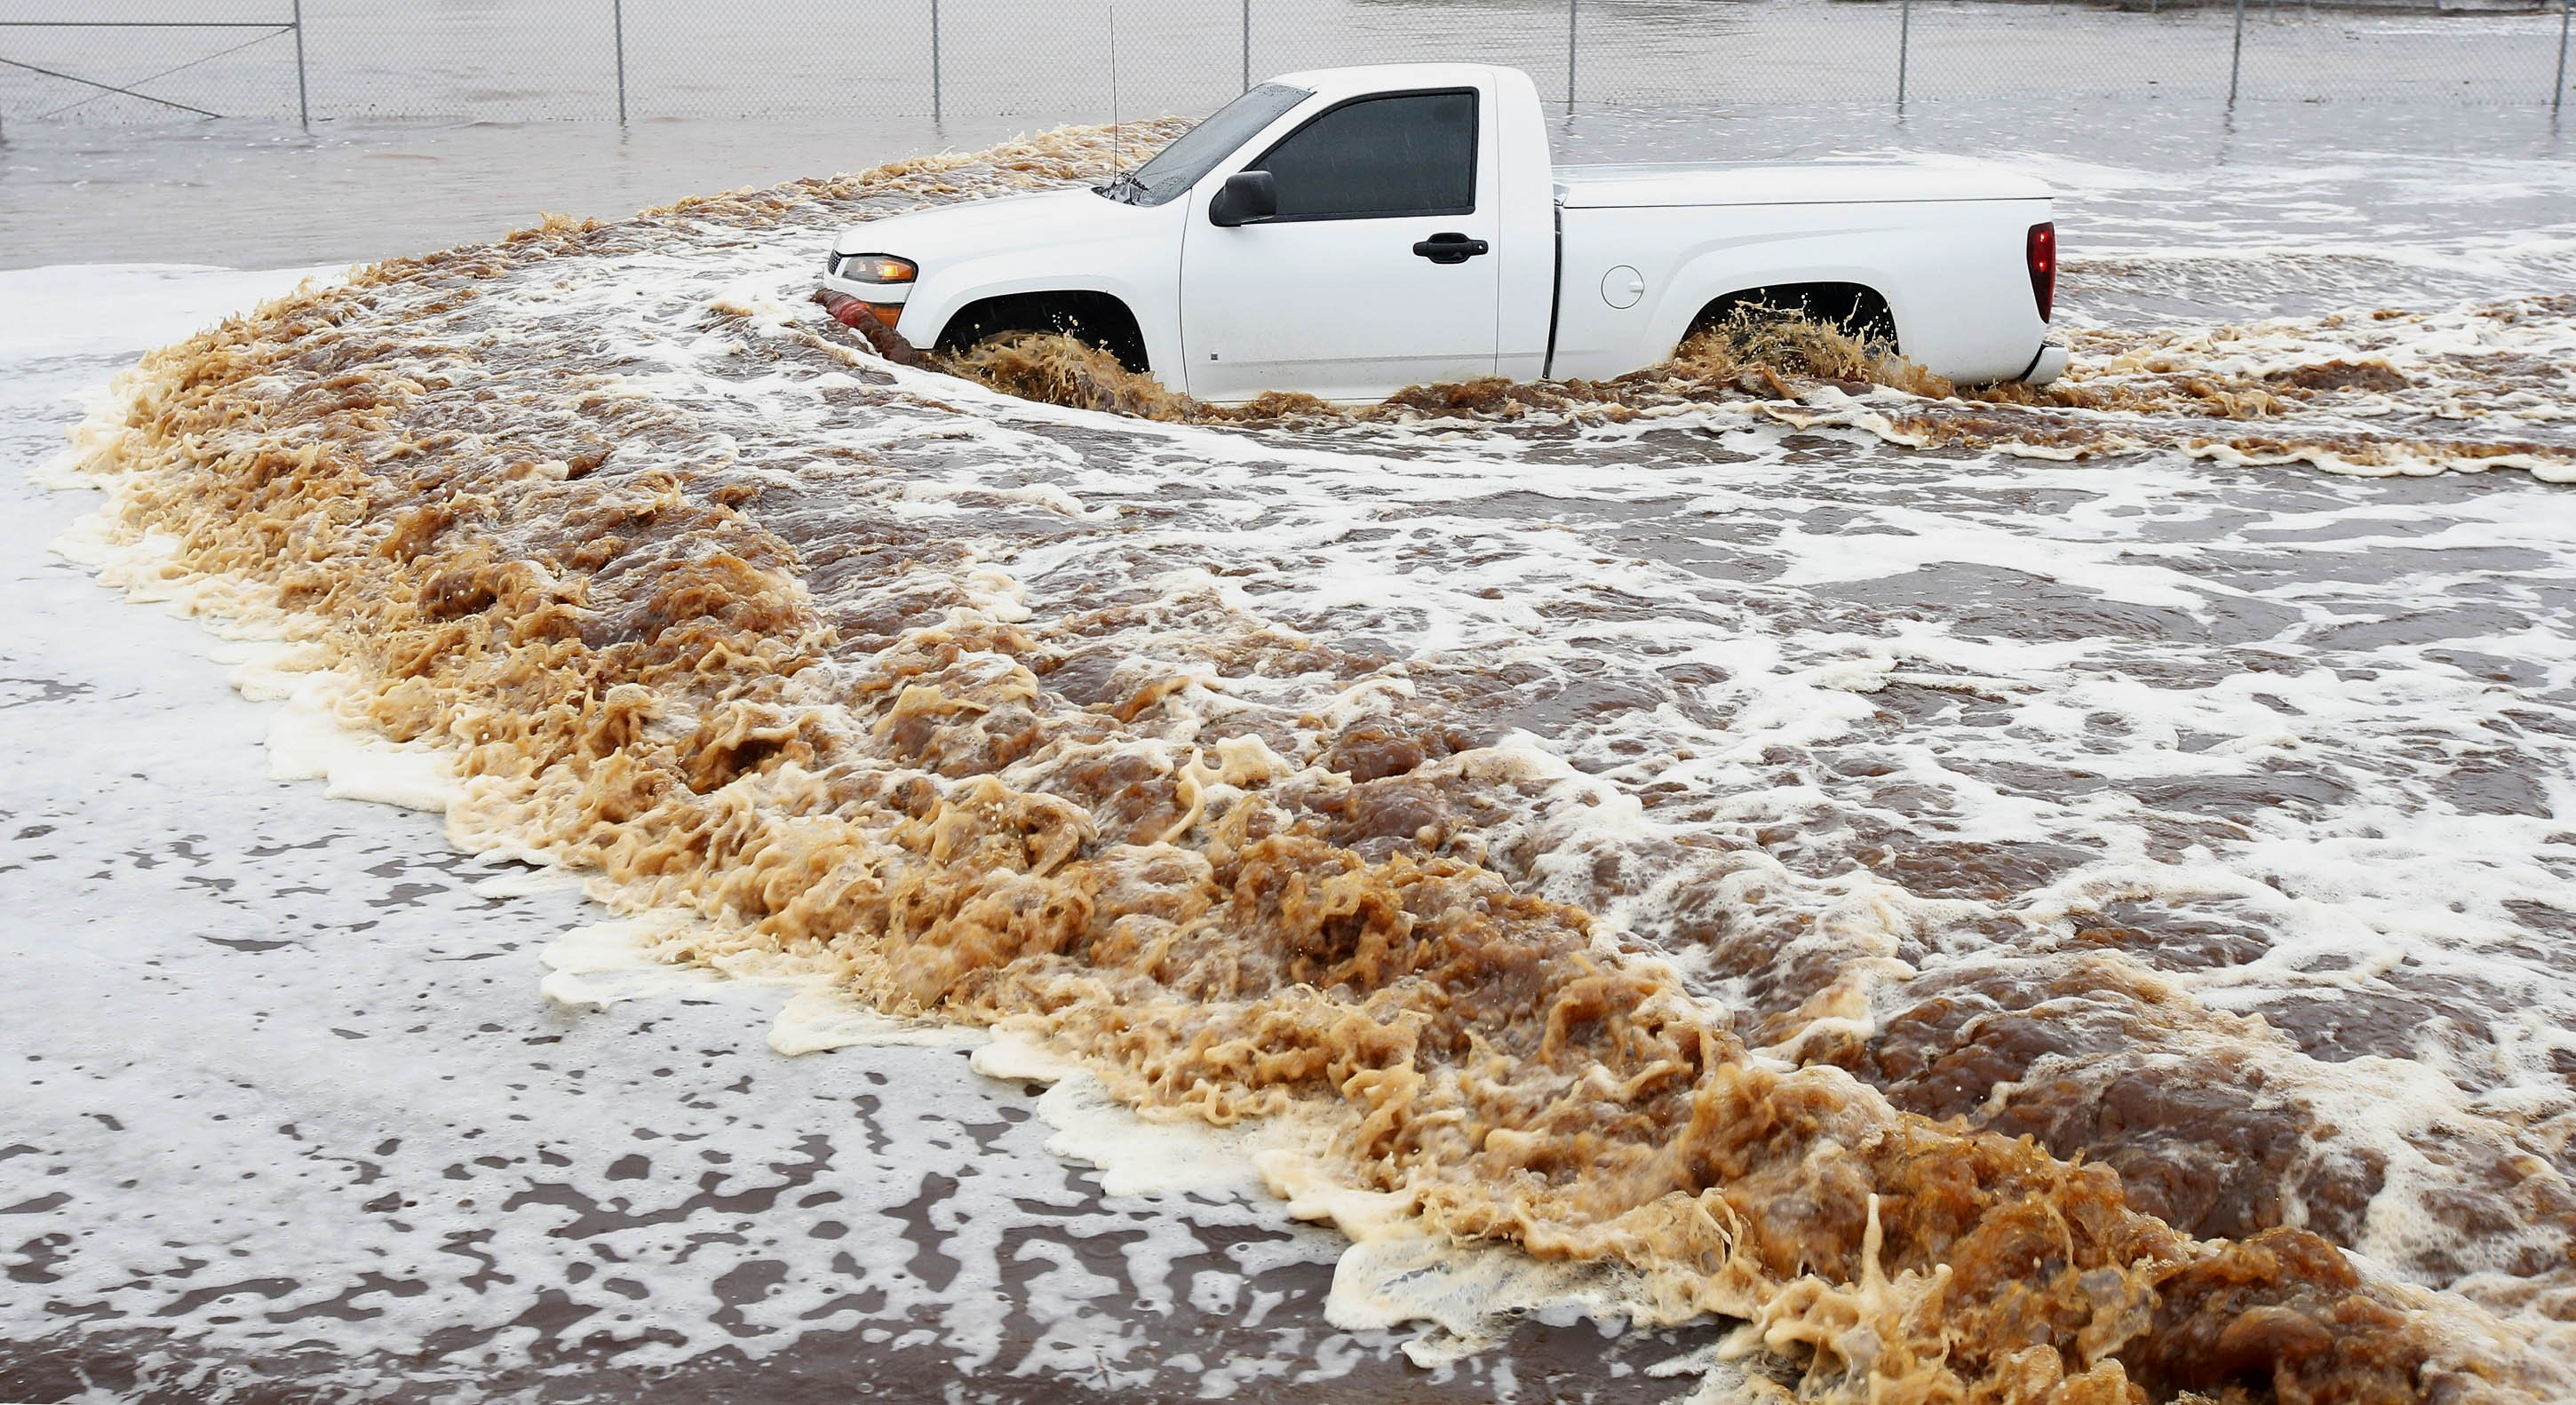 A truck creates a wake as its driver tries to navigate a severely flooded street as heavy rains pour down in Phoenix on Sept. 8, 2014.